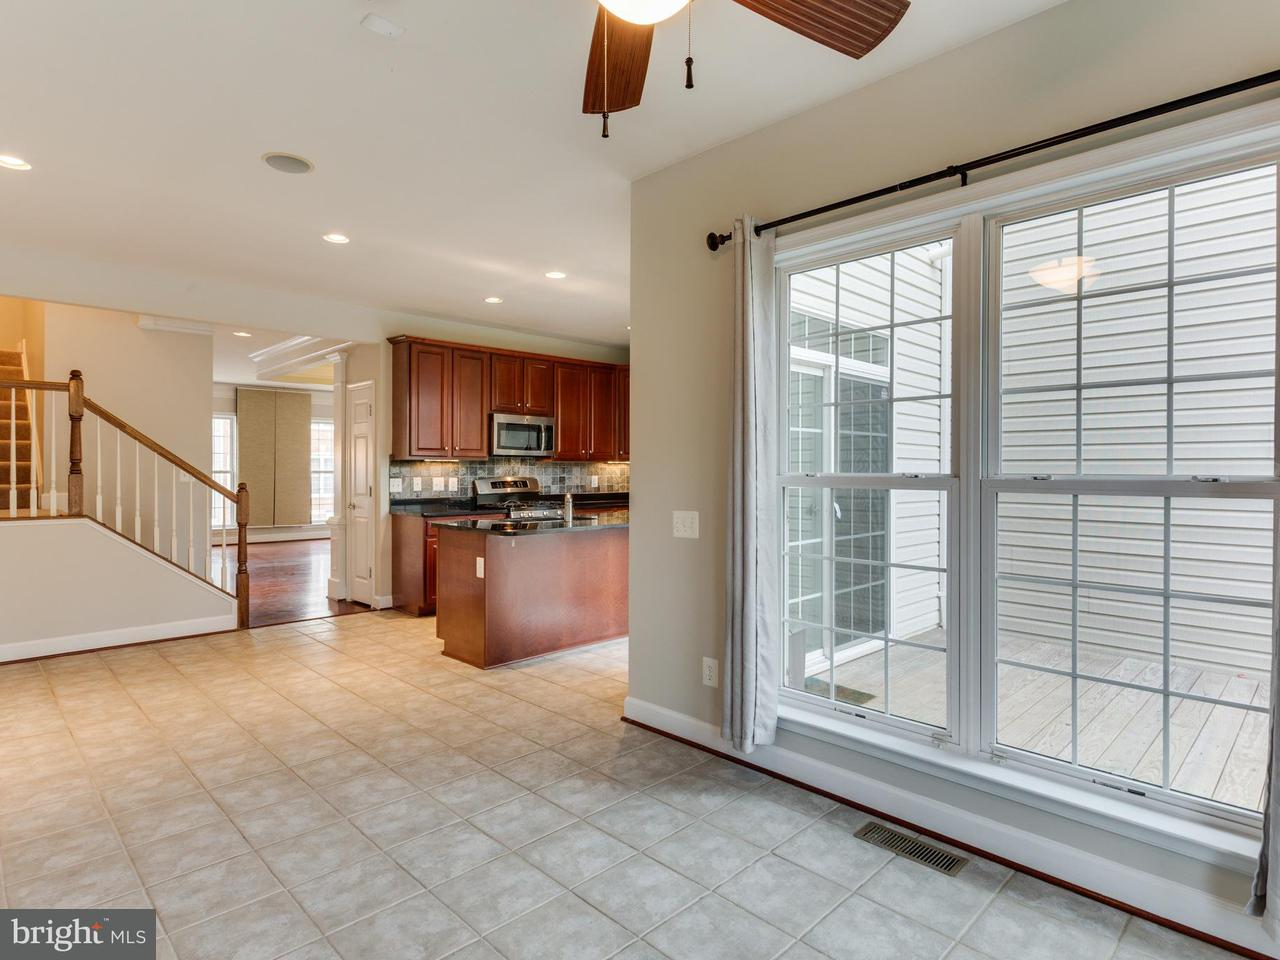 Additional photo for property listing at 3251 Theodore R Hagans Dr Ne 3251 Theodore R Hagans Dr Ne Washington, 哥倫比亞特區 20018 美國